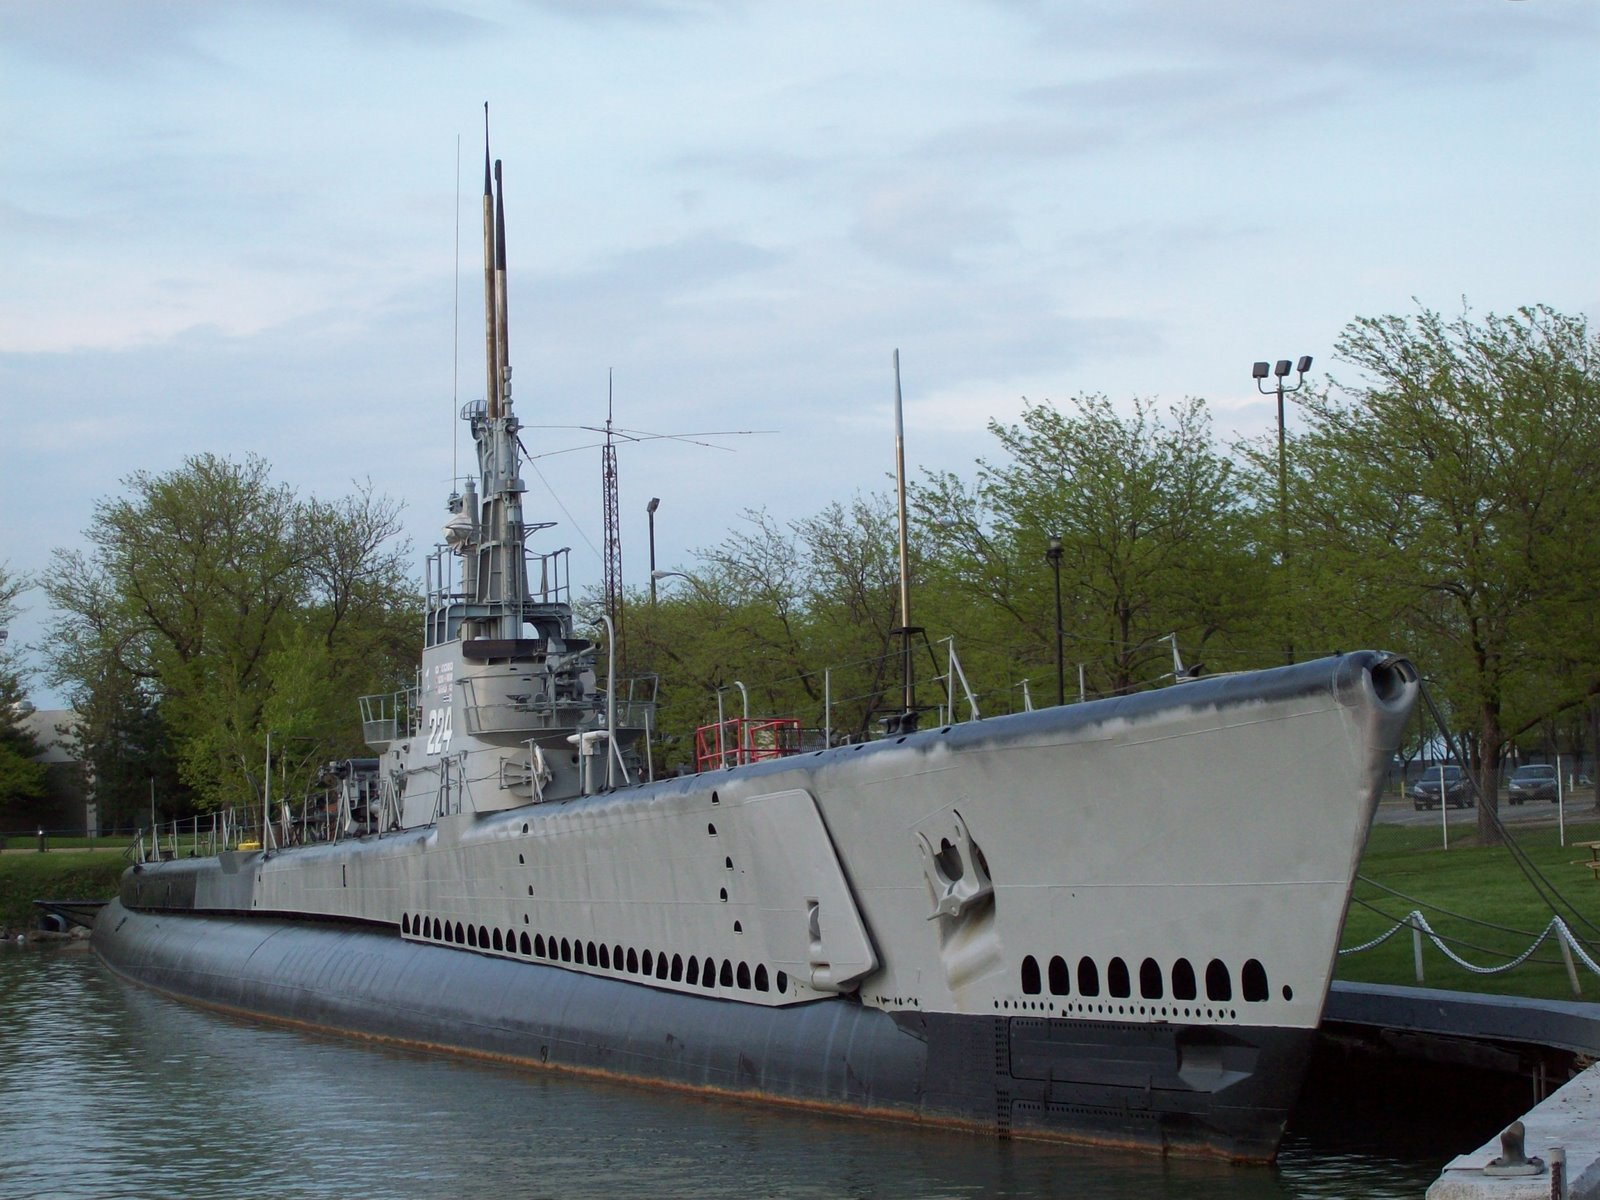 museumships - your most complete source for museum ships